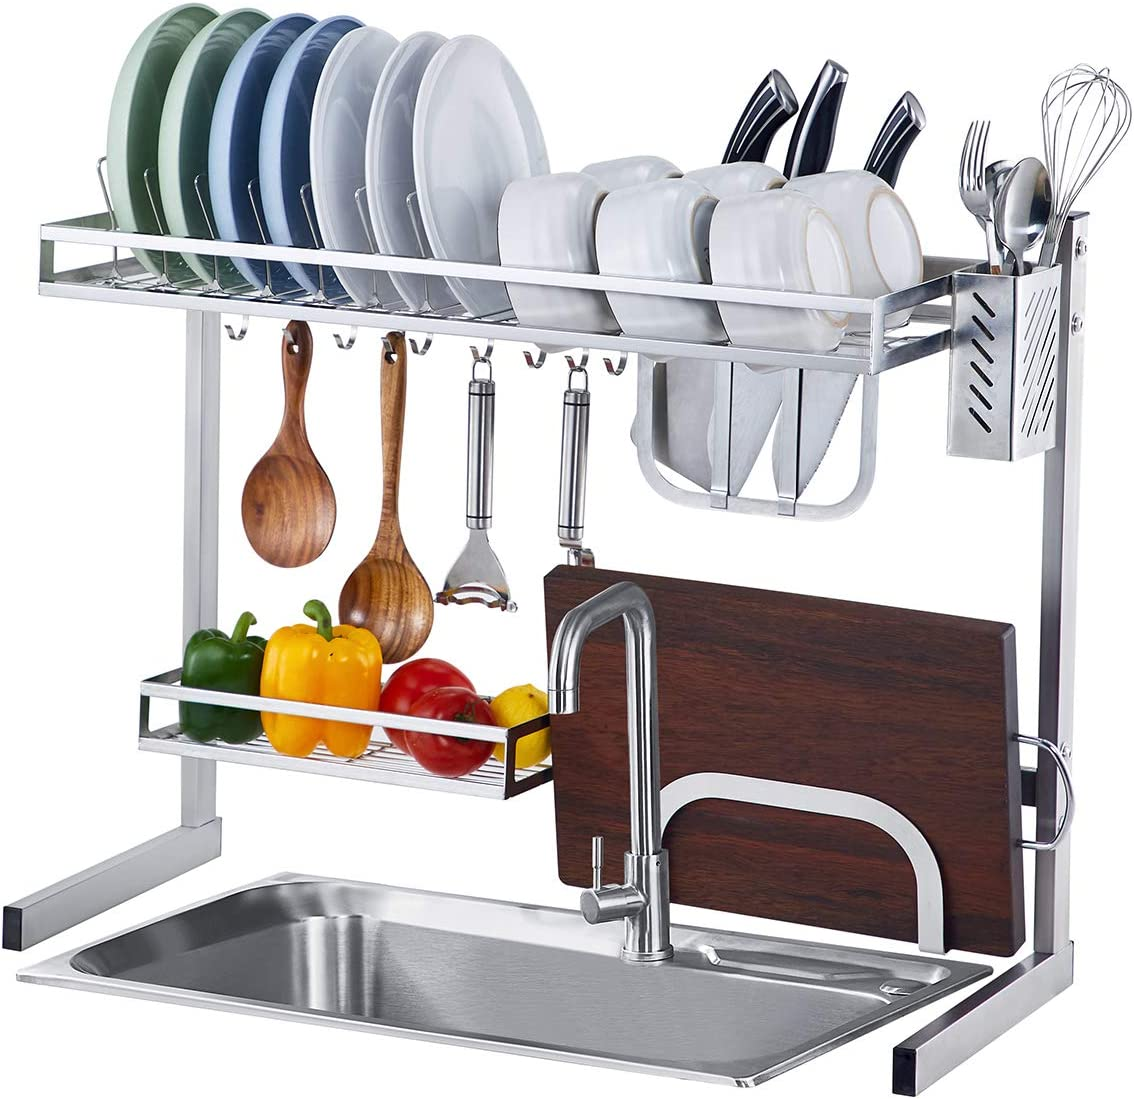 Istboom Over The Sink Dish Drying Rack Small Over Counter Dish Drainer For Kitchen Single Sink With Utensil Caddy Knife Cutting Board Holder 10 Hooks Stainless Steel Sink Size